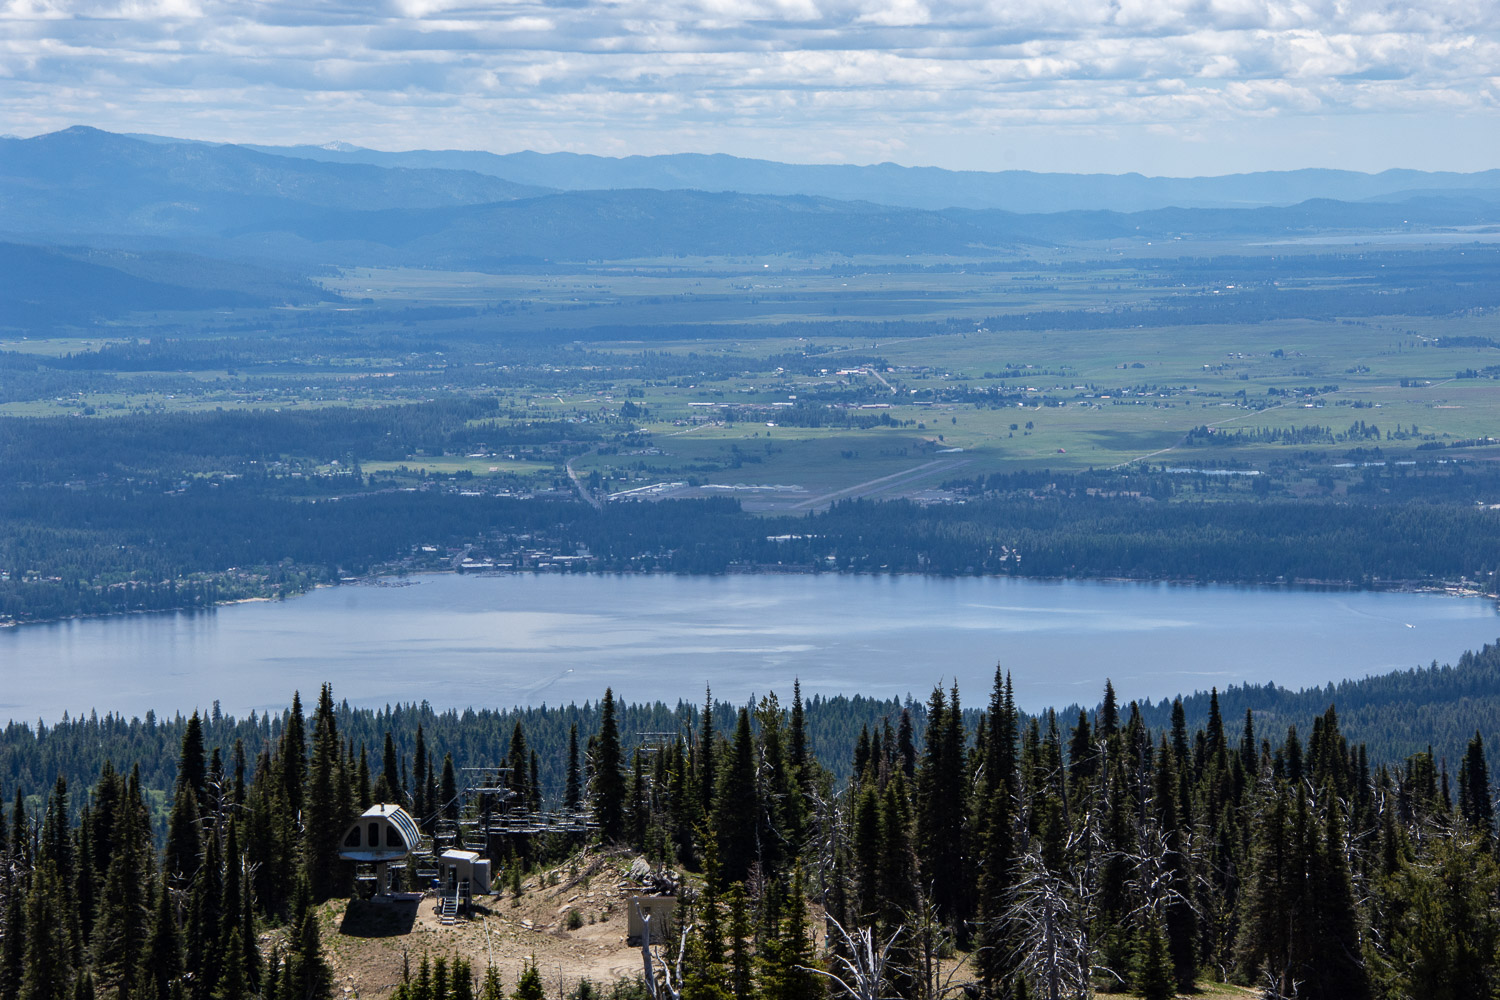 Payette Lake and McCall from the Brundage Mountain lookout,  Idaho.